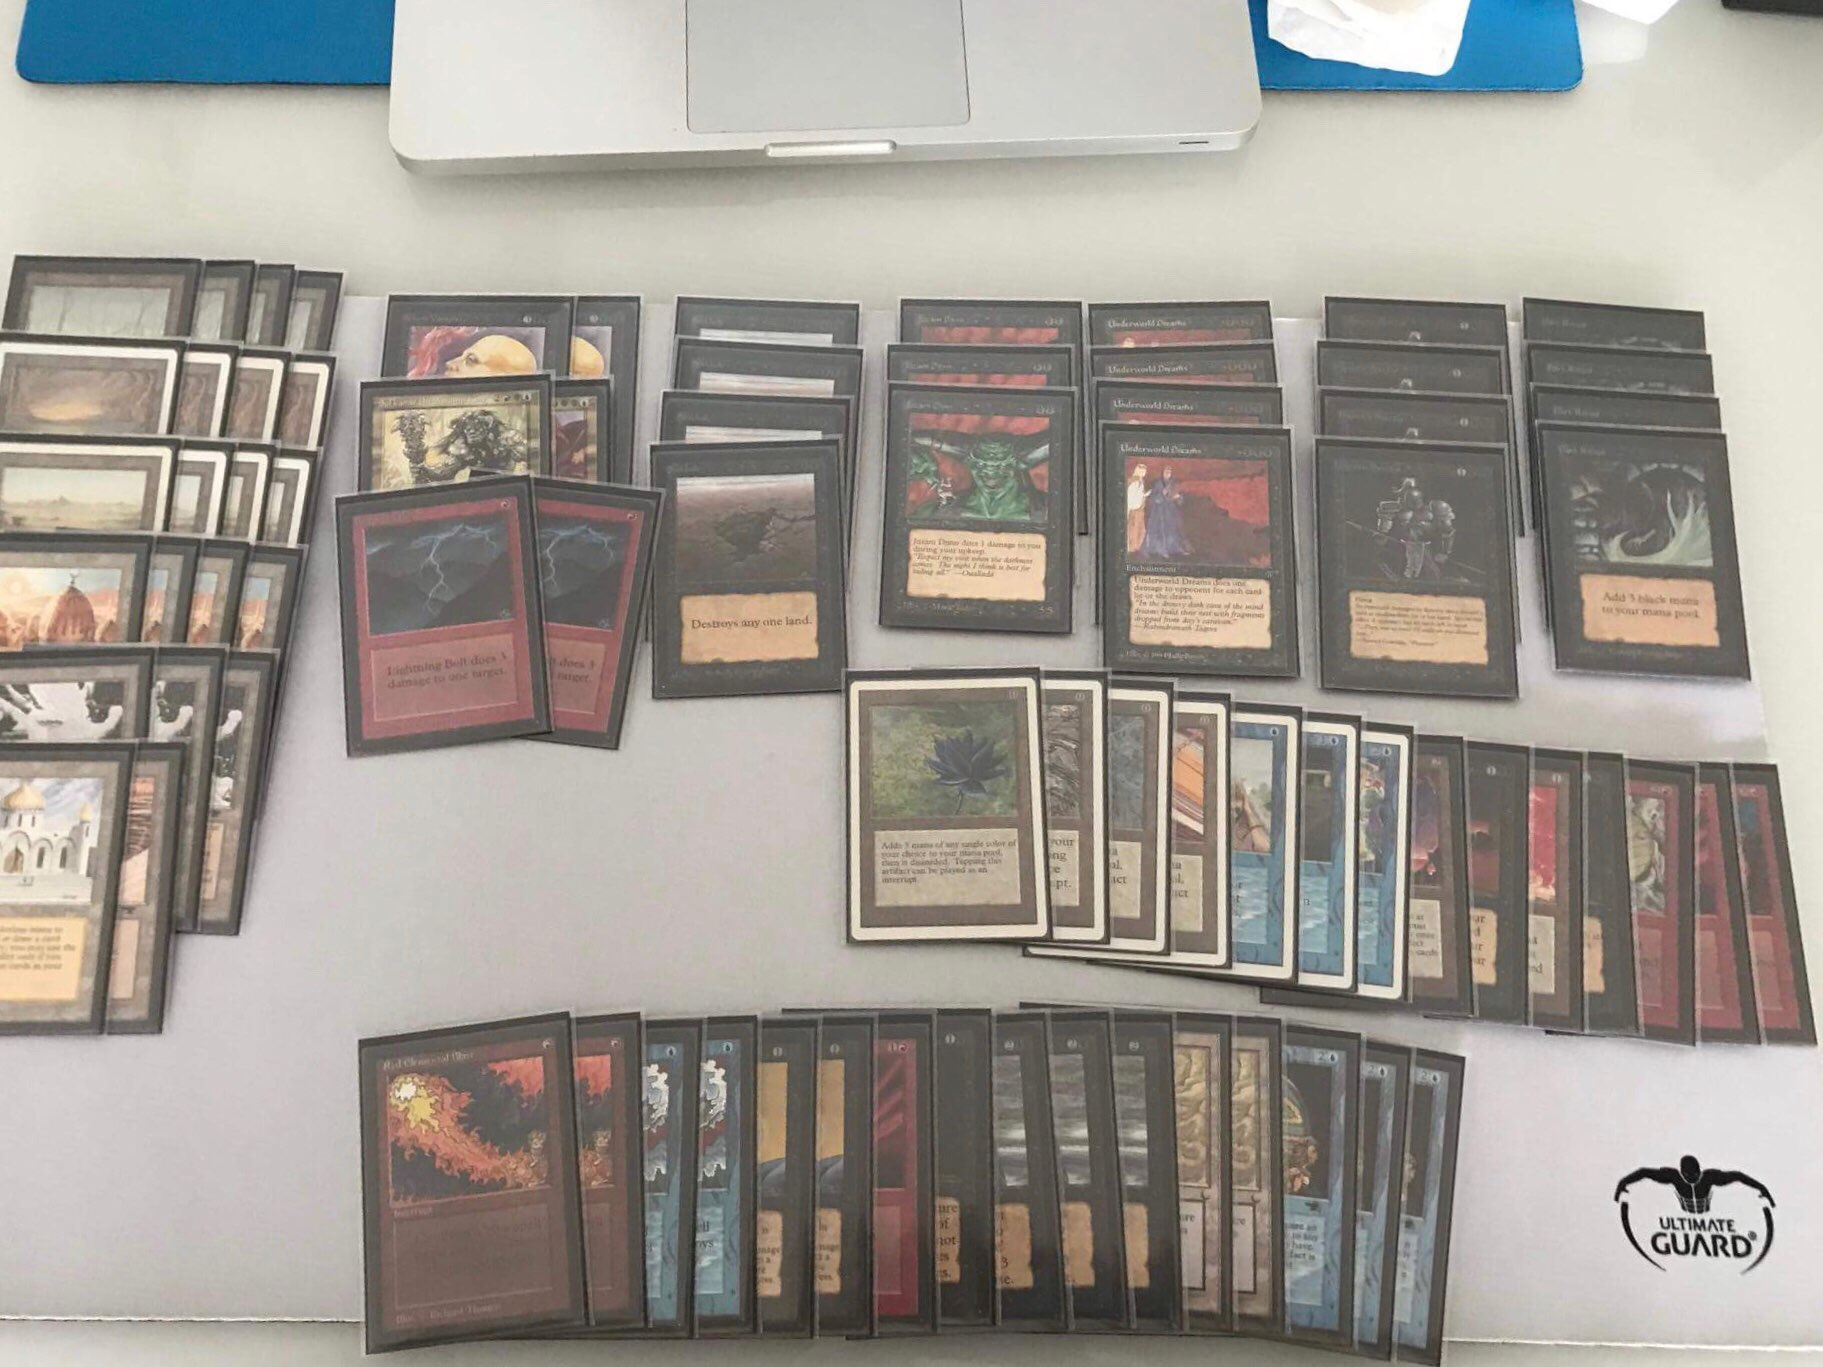 6 - Patric Hiness - Evil Deck